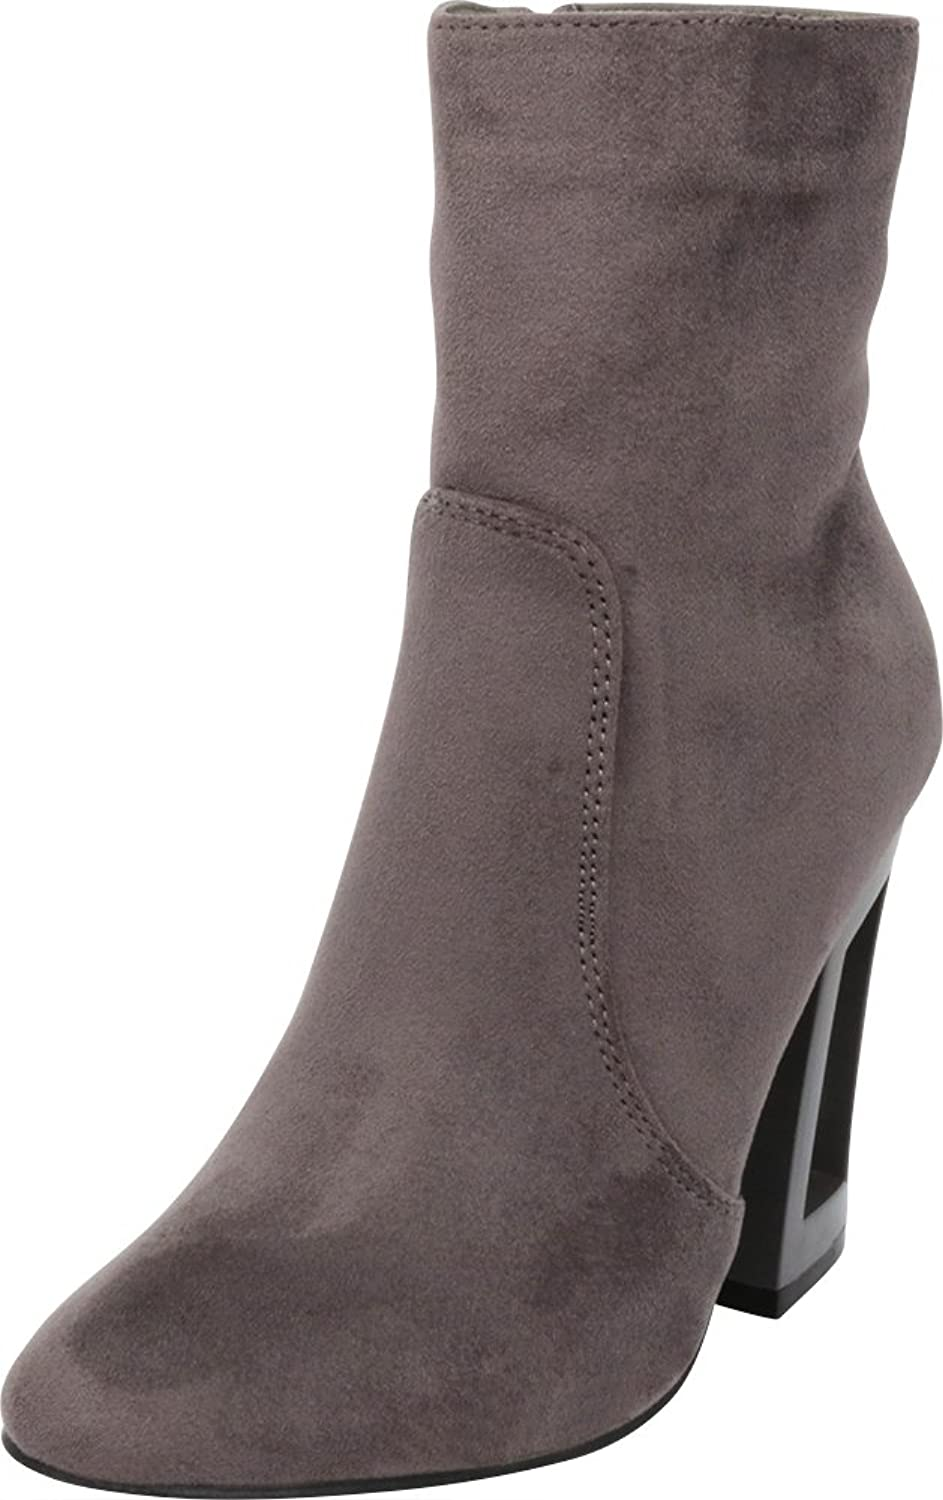 Cambridge Select Women's Closed Toe Chunky Structural Hollow Heel Ankle Bootie